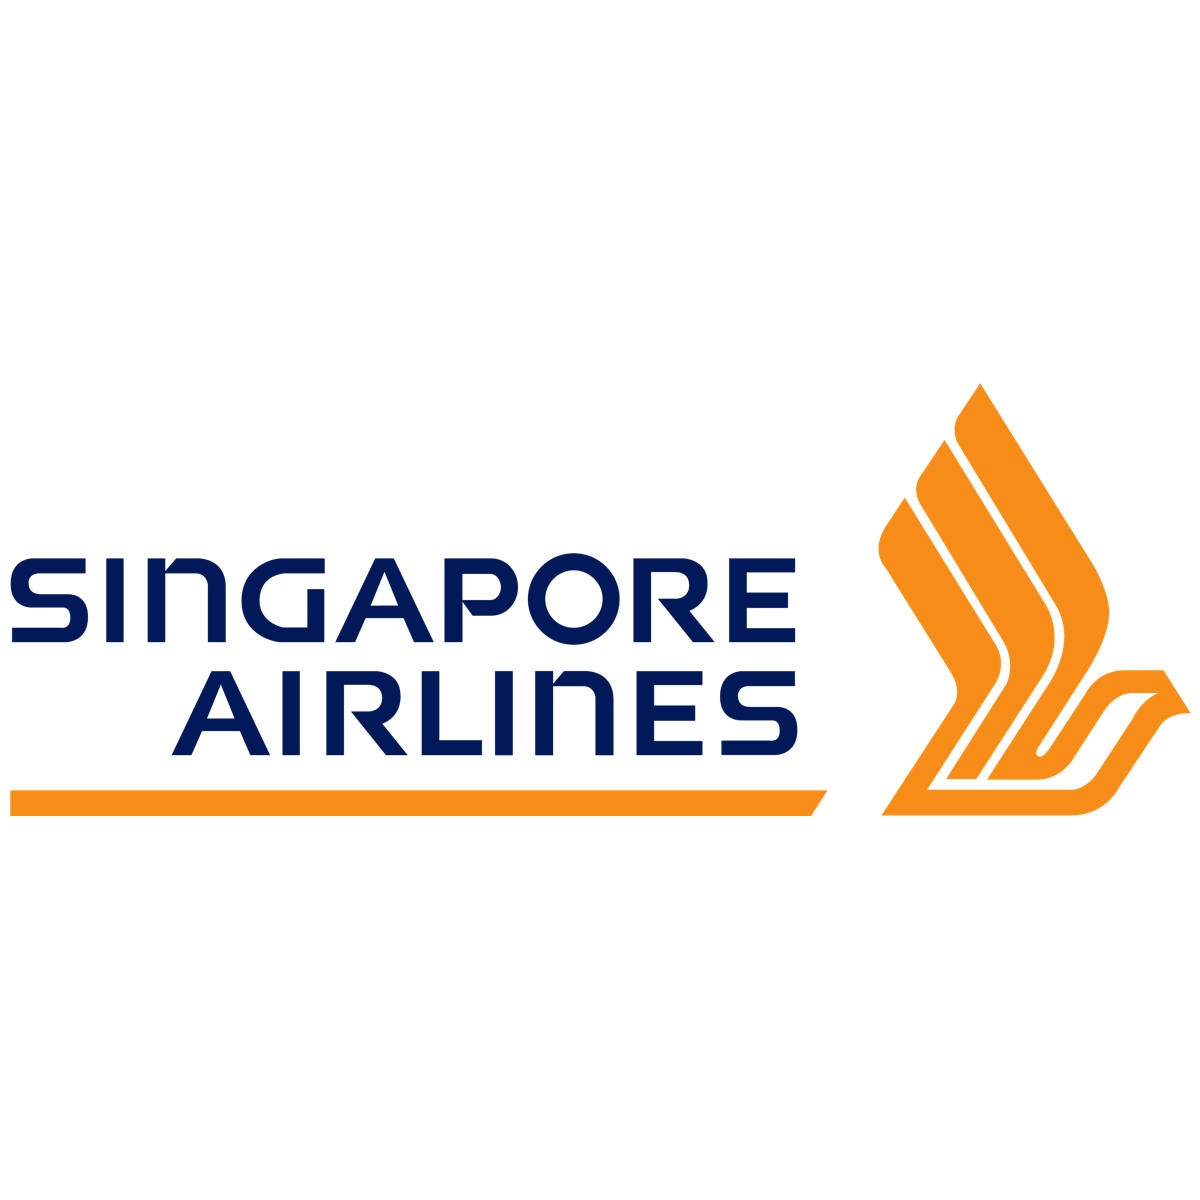 Singapore Airlines - DBS Vickers 2018-01-30: Yields Need To Catch Up